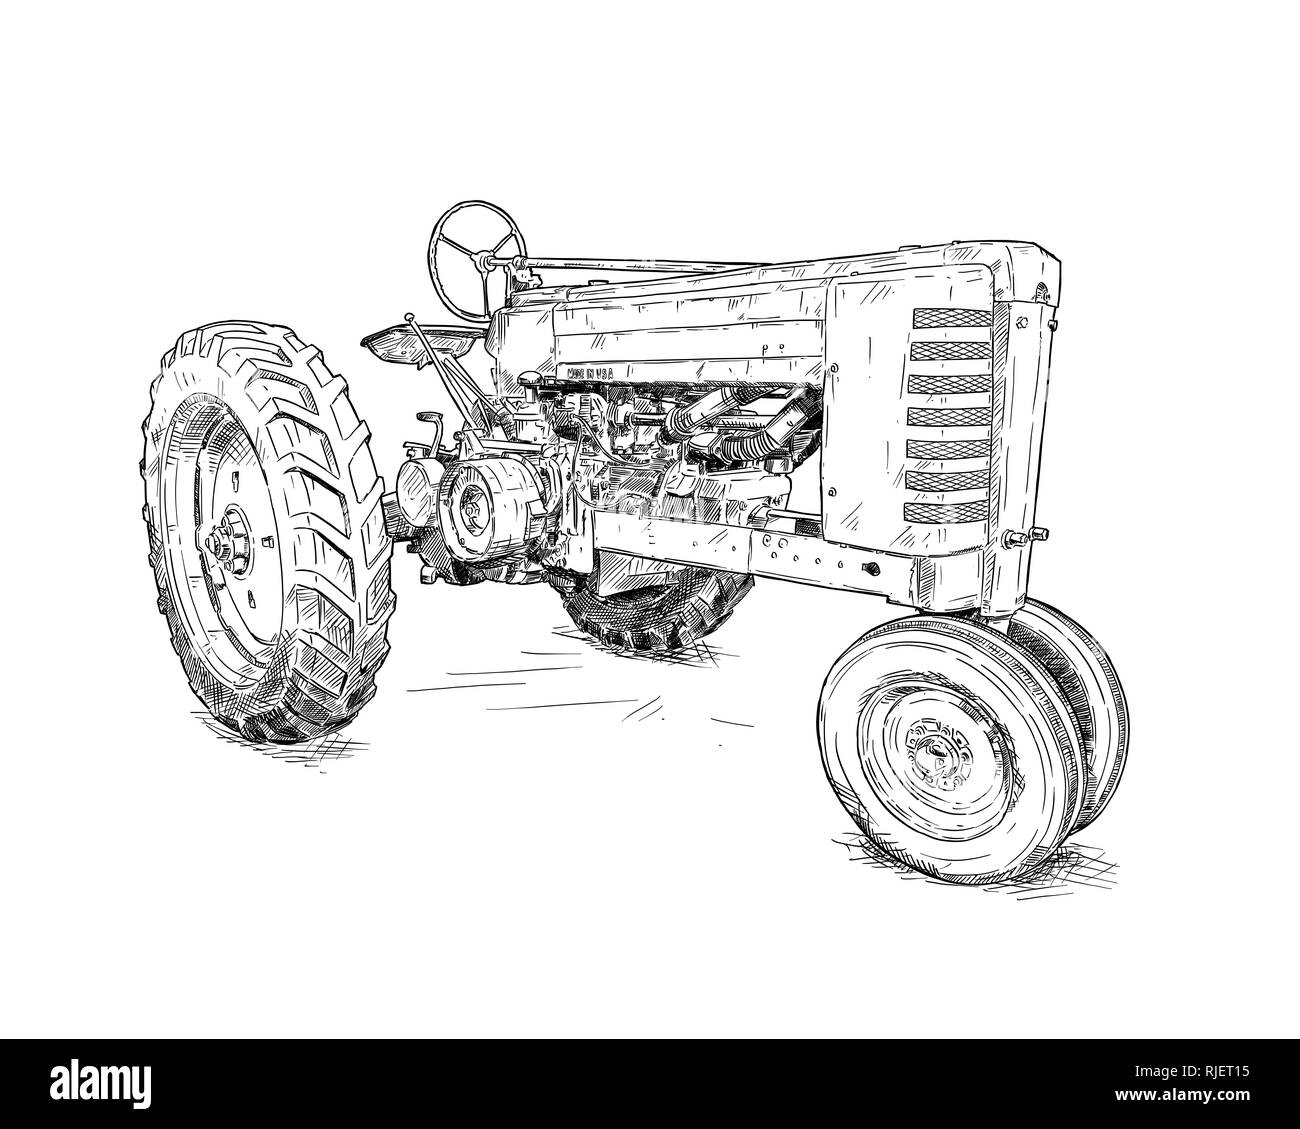 Artistic Digital Drawing Illustration of Old Tractor - Stock Image